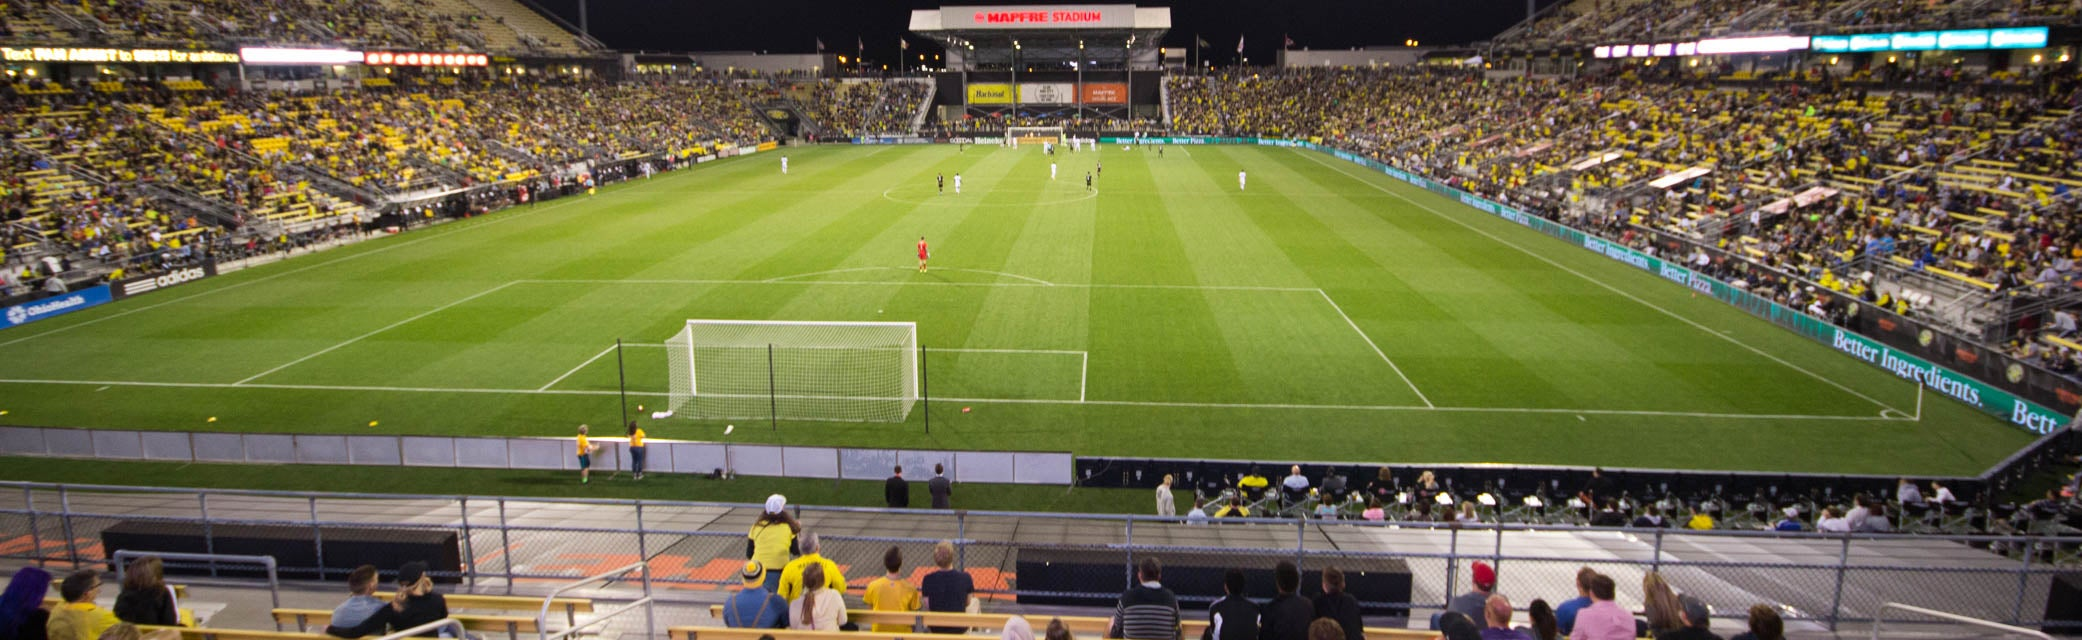 Seat view from South Endline